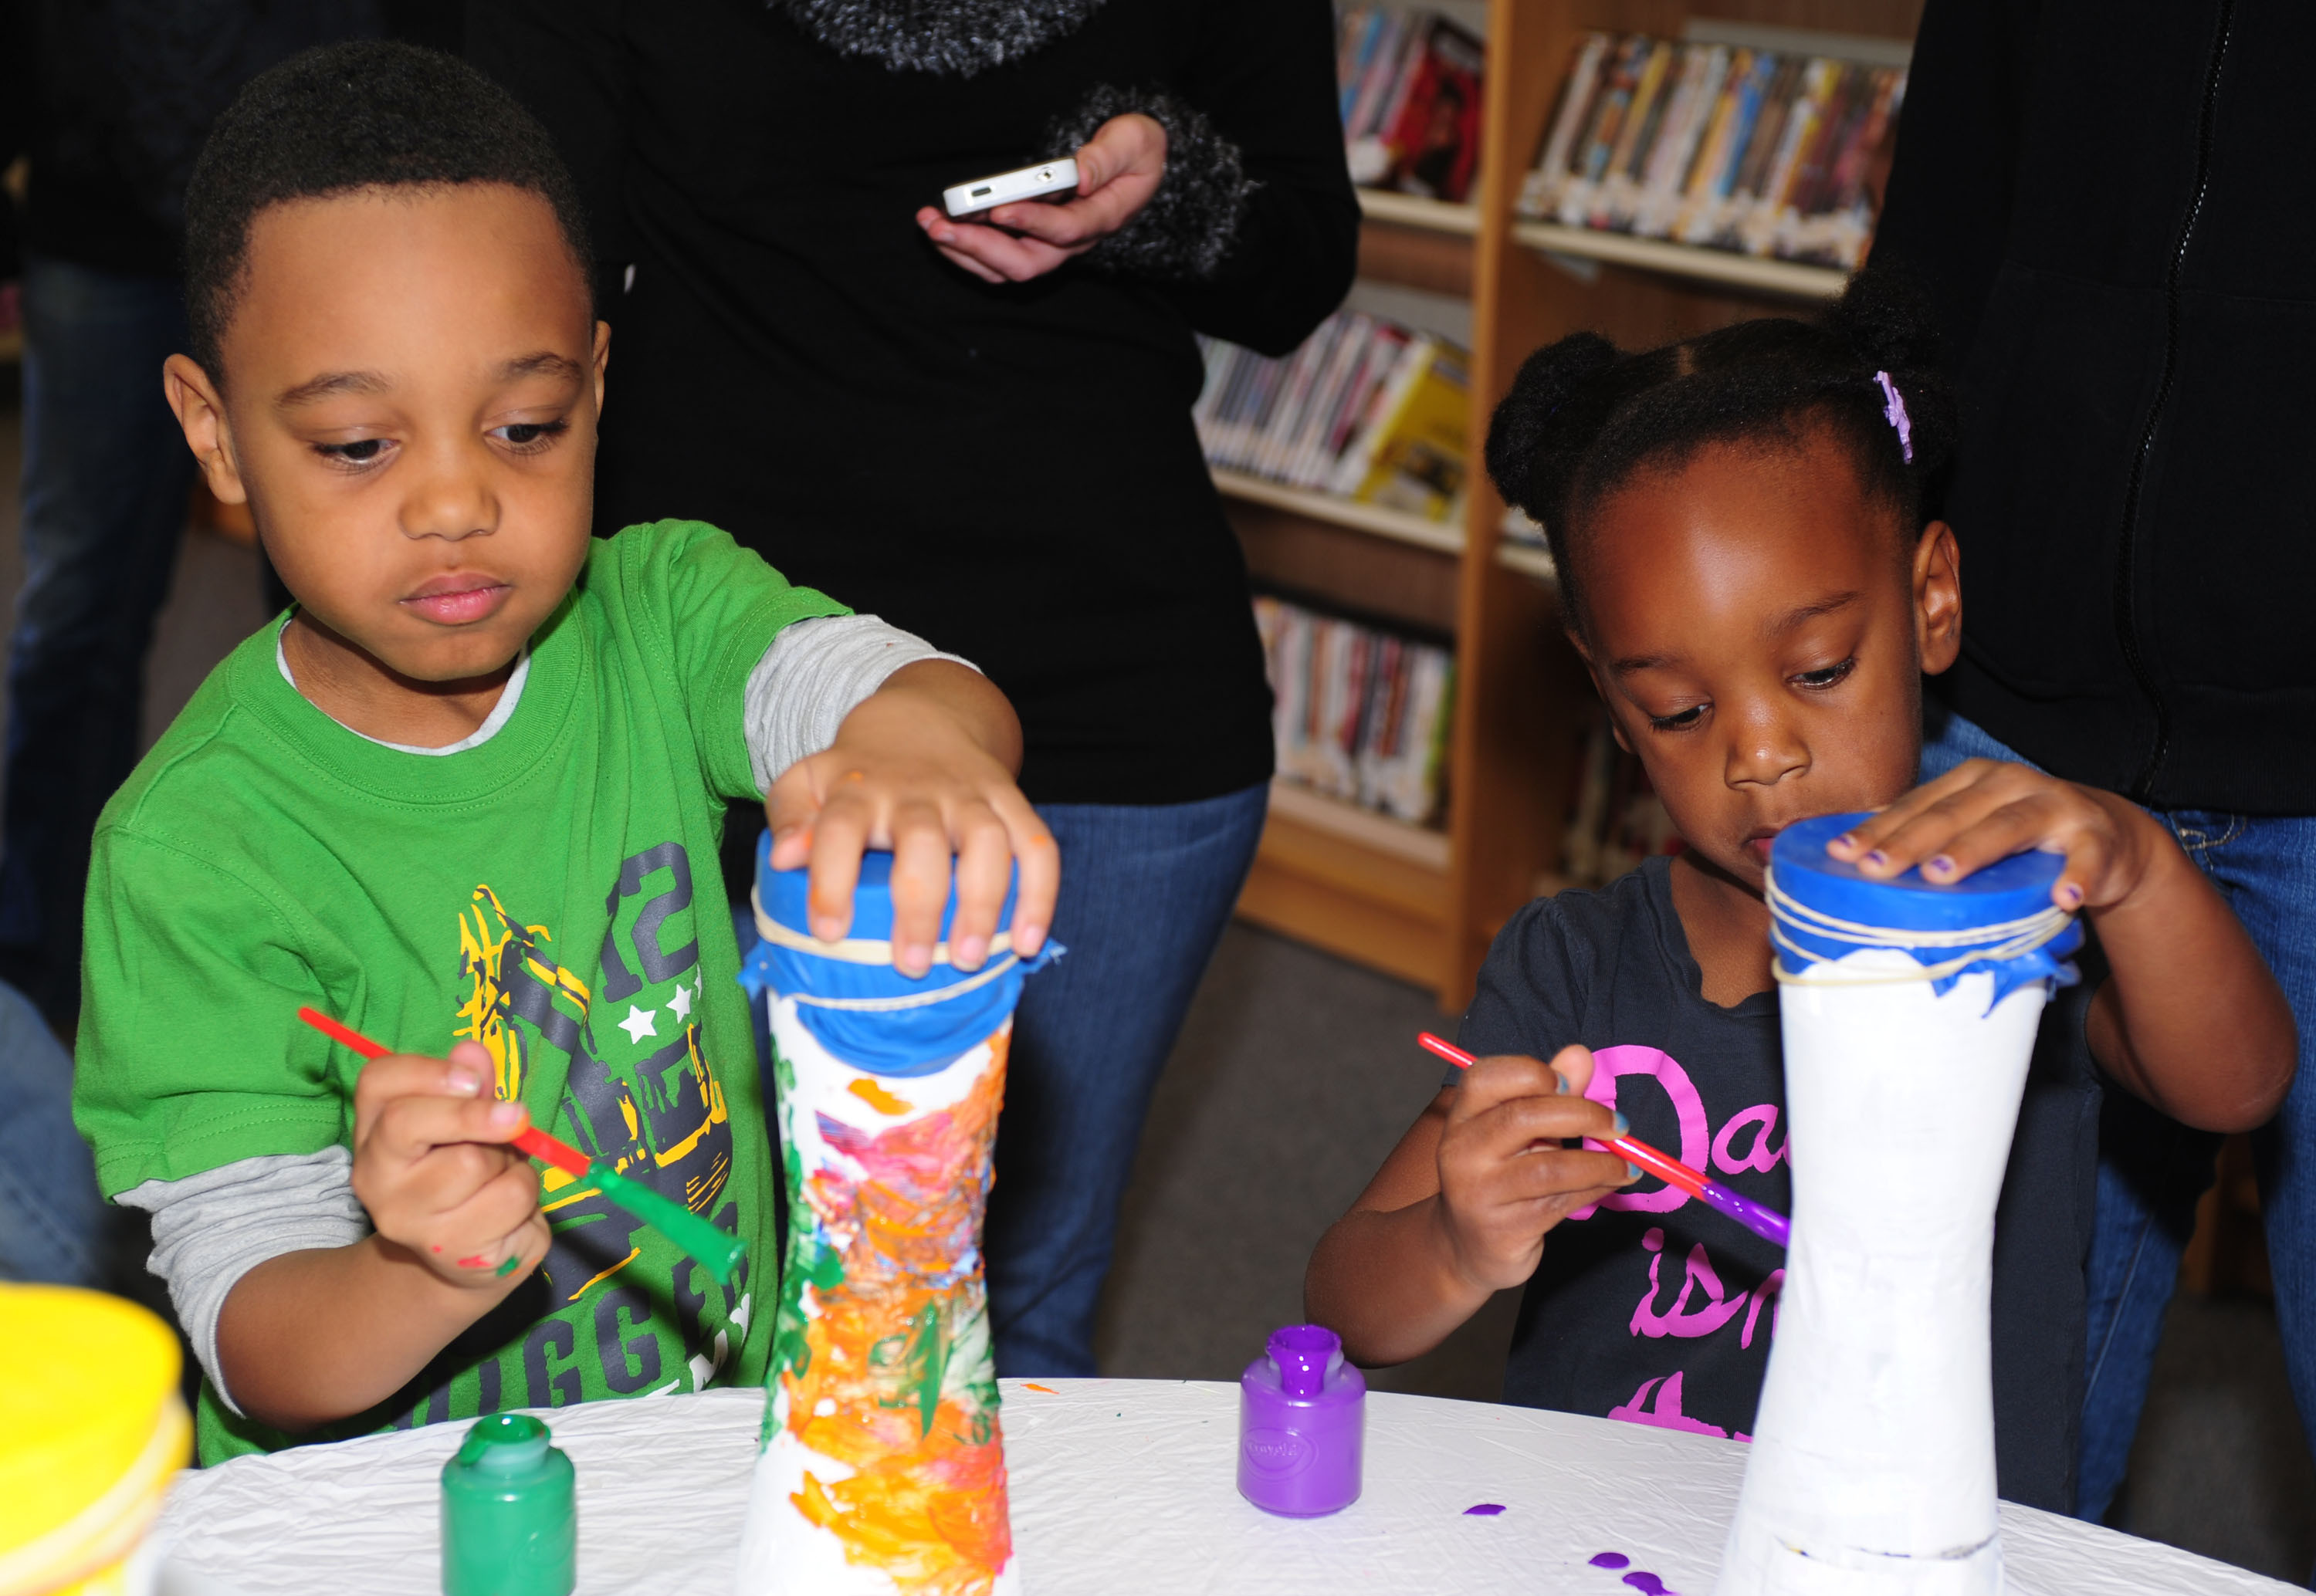 Best ideas about Kids Doing Arts And Crafts . Save or Pin 4 Things Educators and Parents Can Do to Develop a Child s Now.